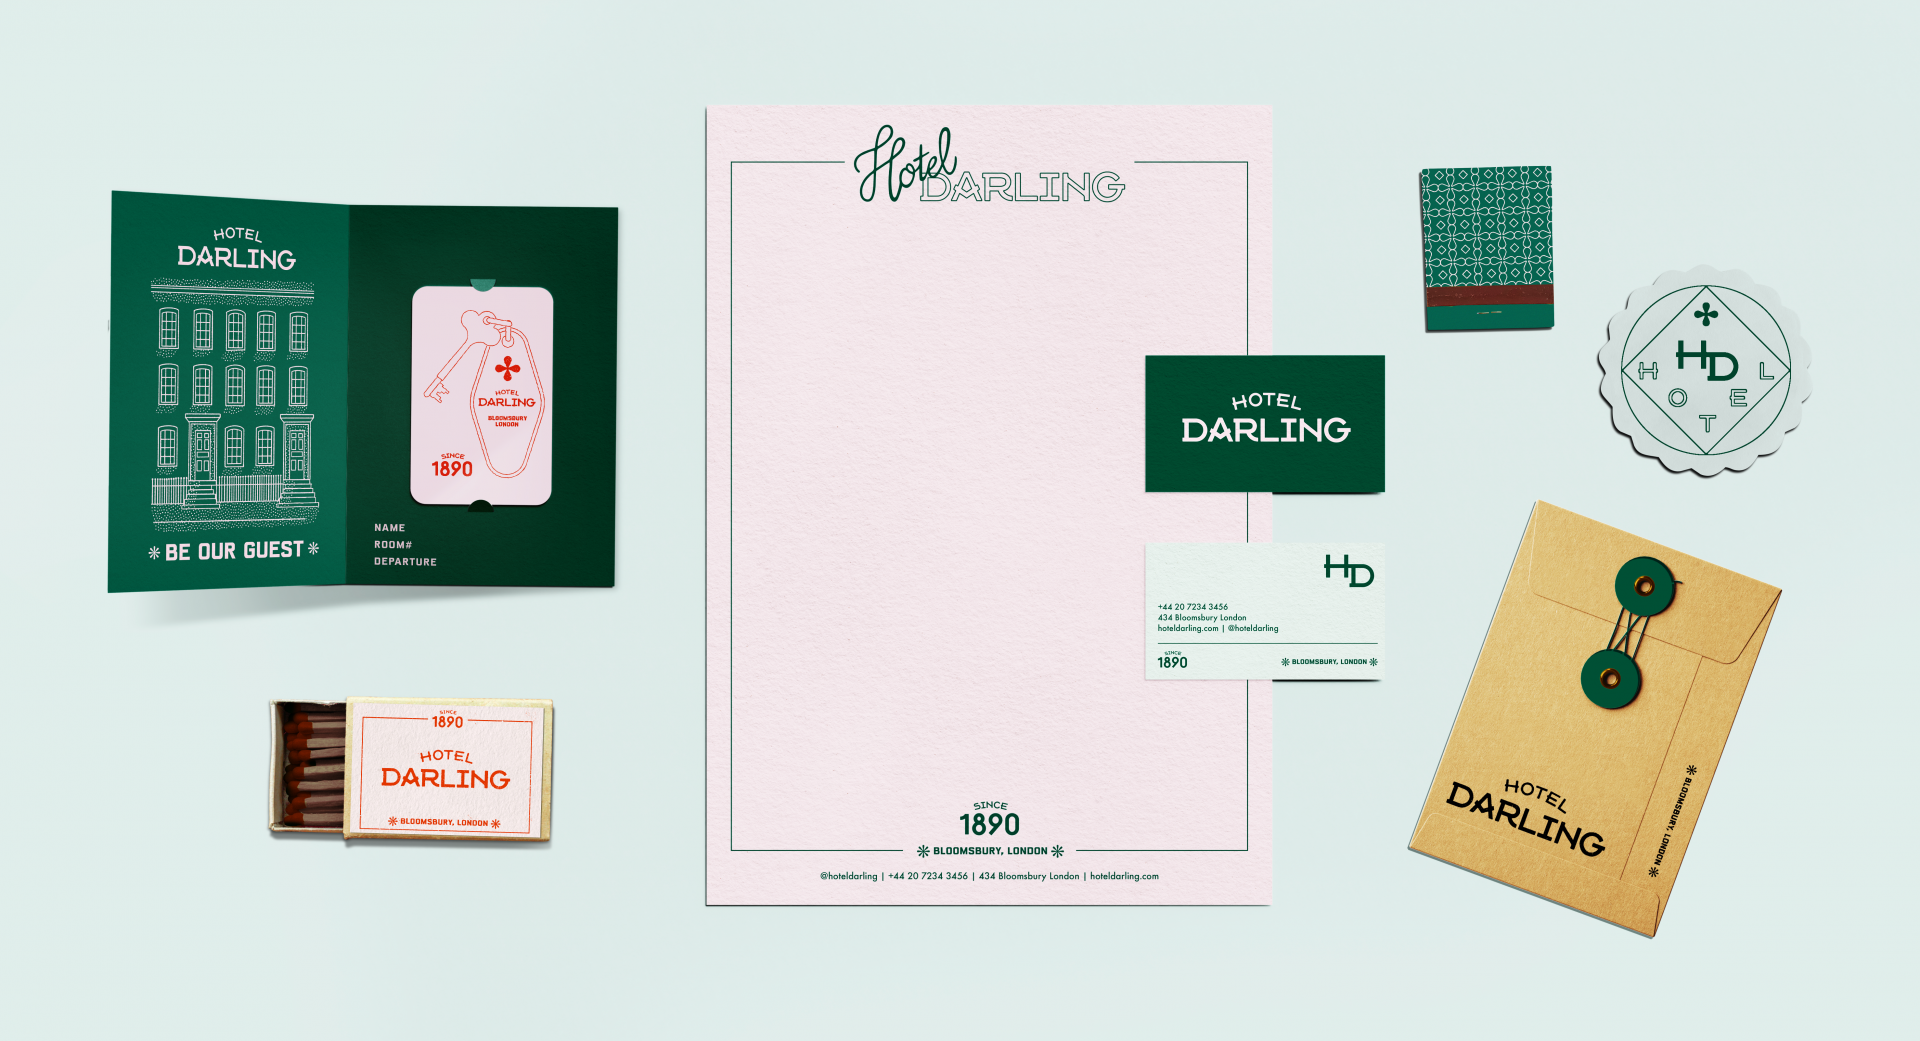 A photo of brand expressions of the fictional Hotel Darling, including stationery, a keycard, matches, a coaster and envelope.